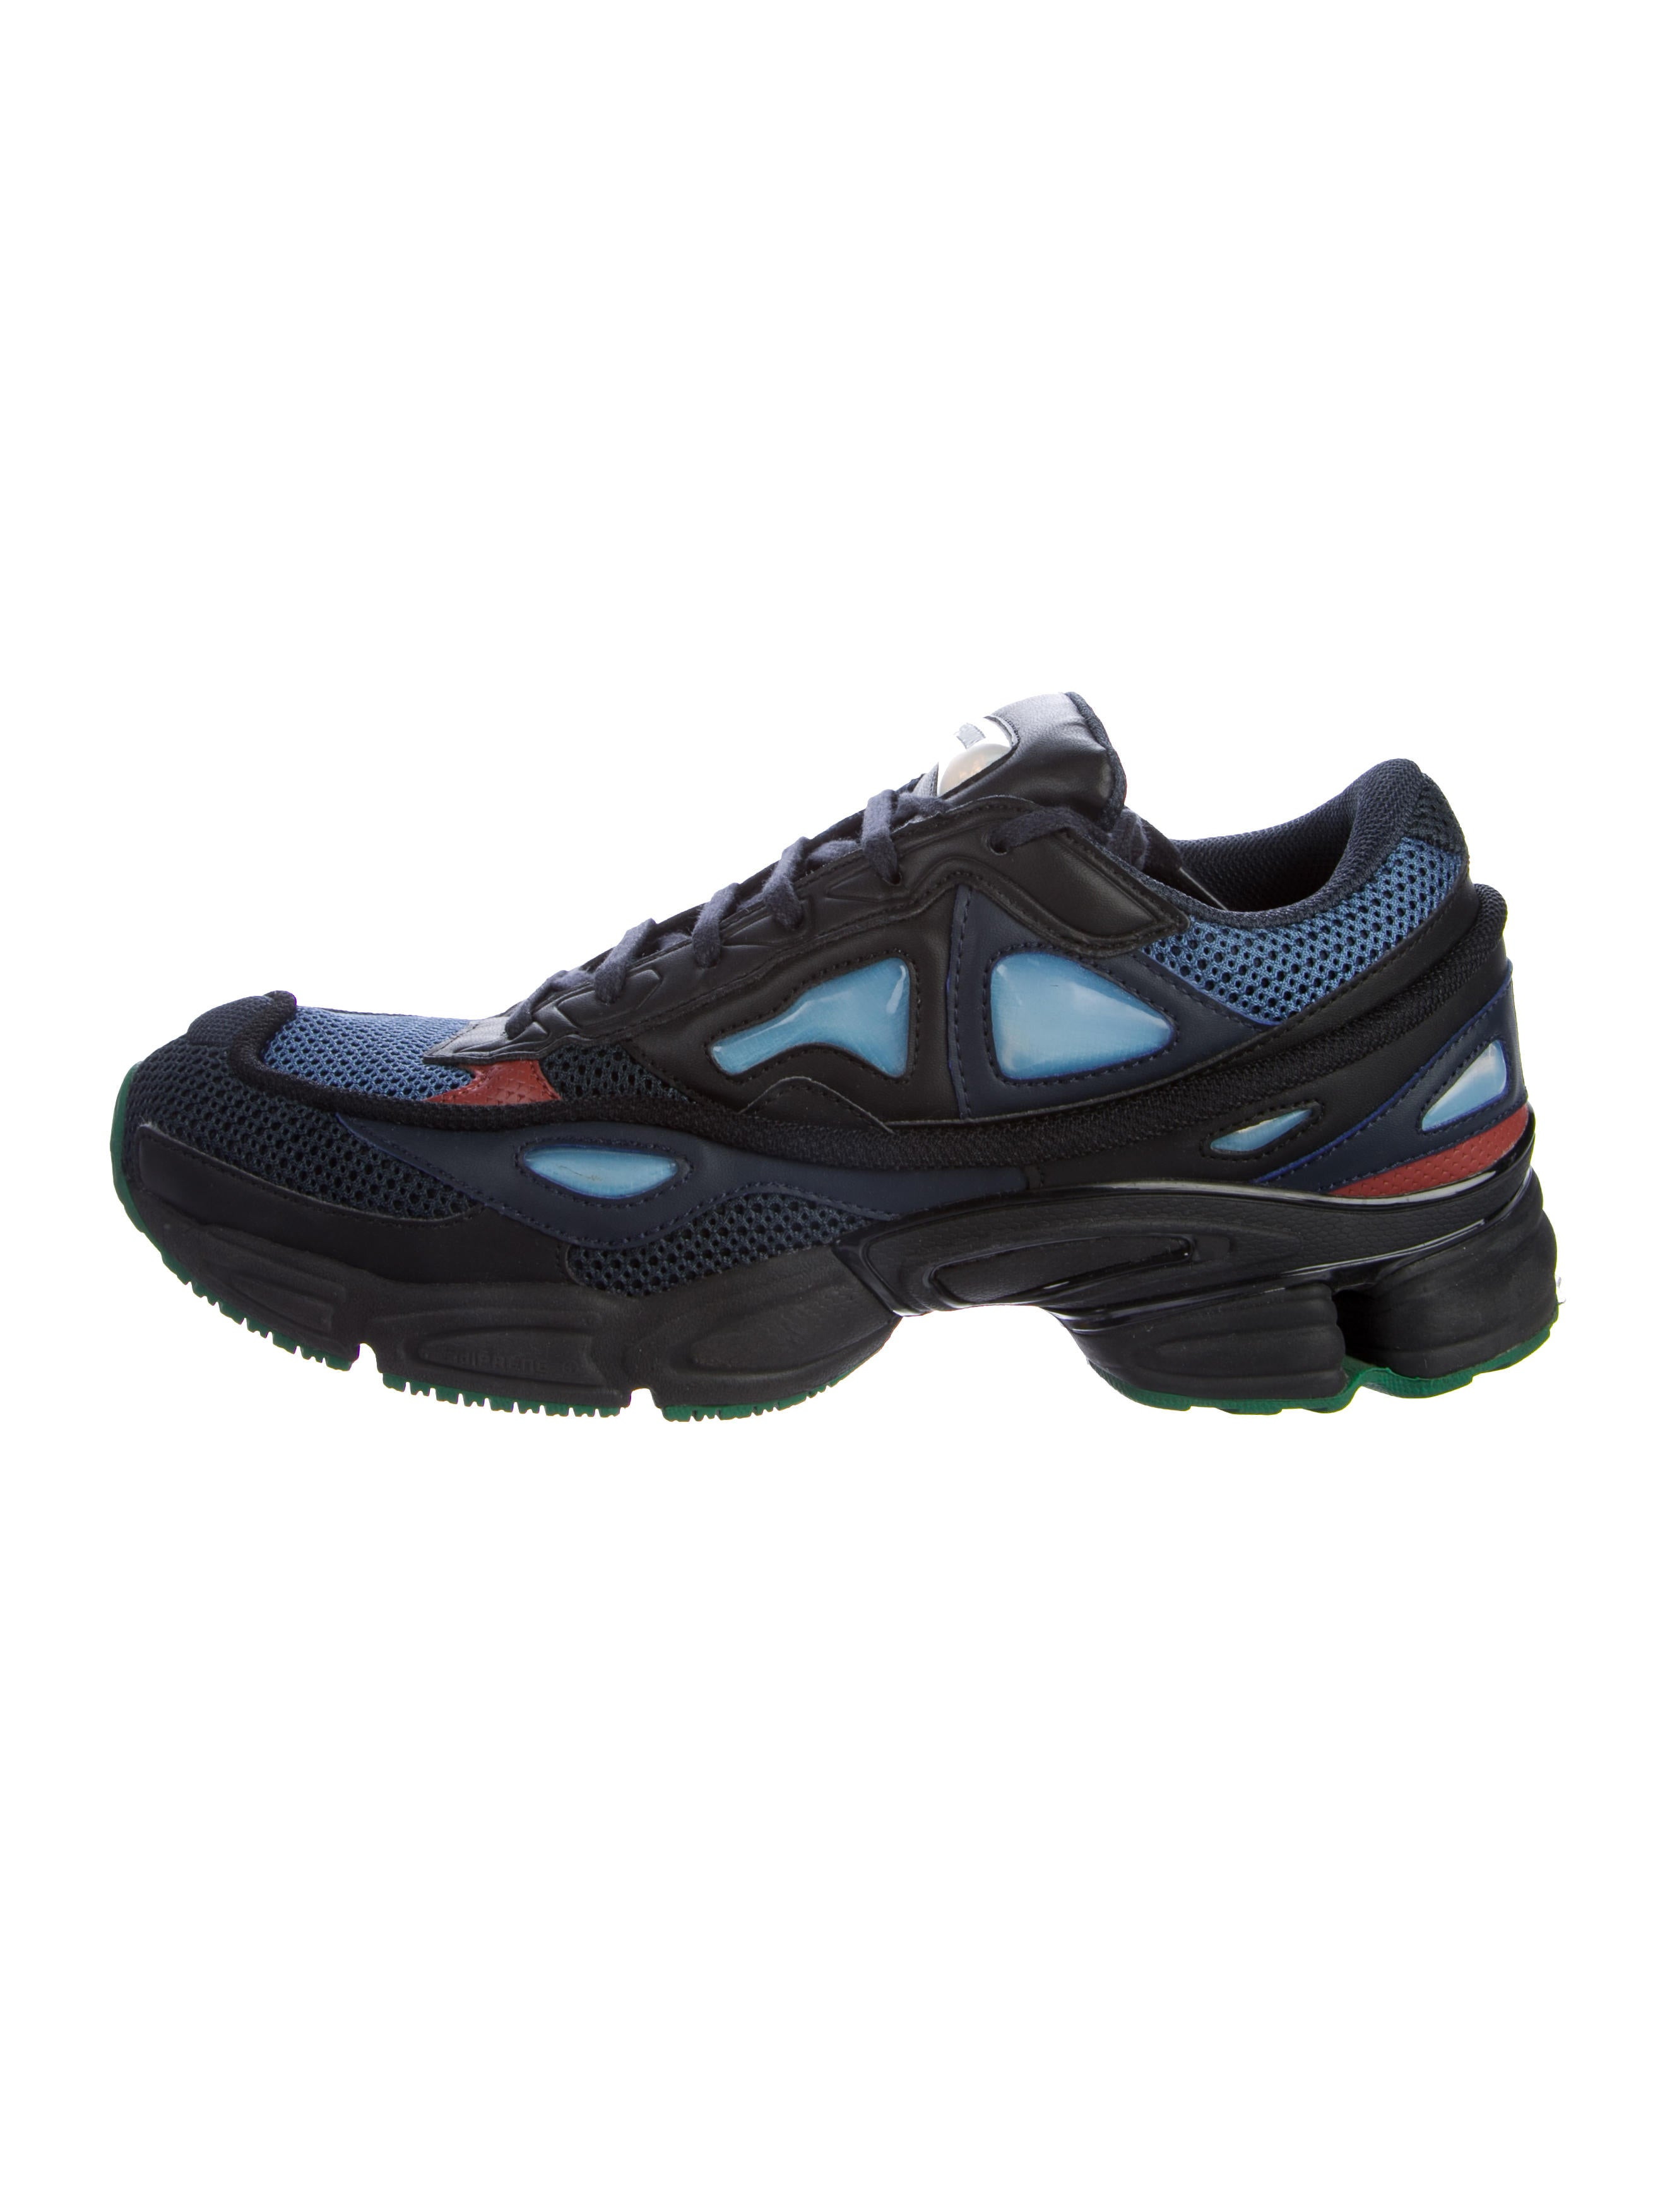 raf simons x adidas ozweego 2 low top sneakers shoes. Black Bedroom Furniture Sets. Home Design Ideas